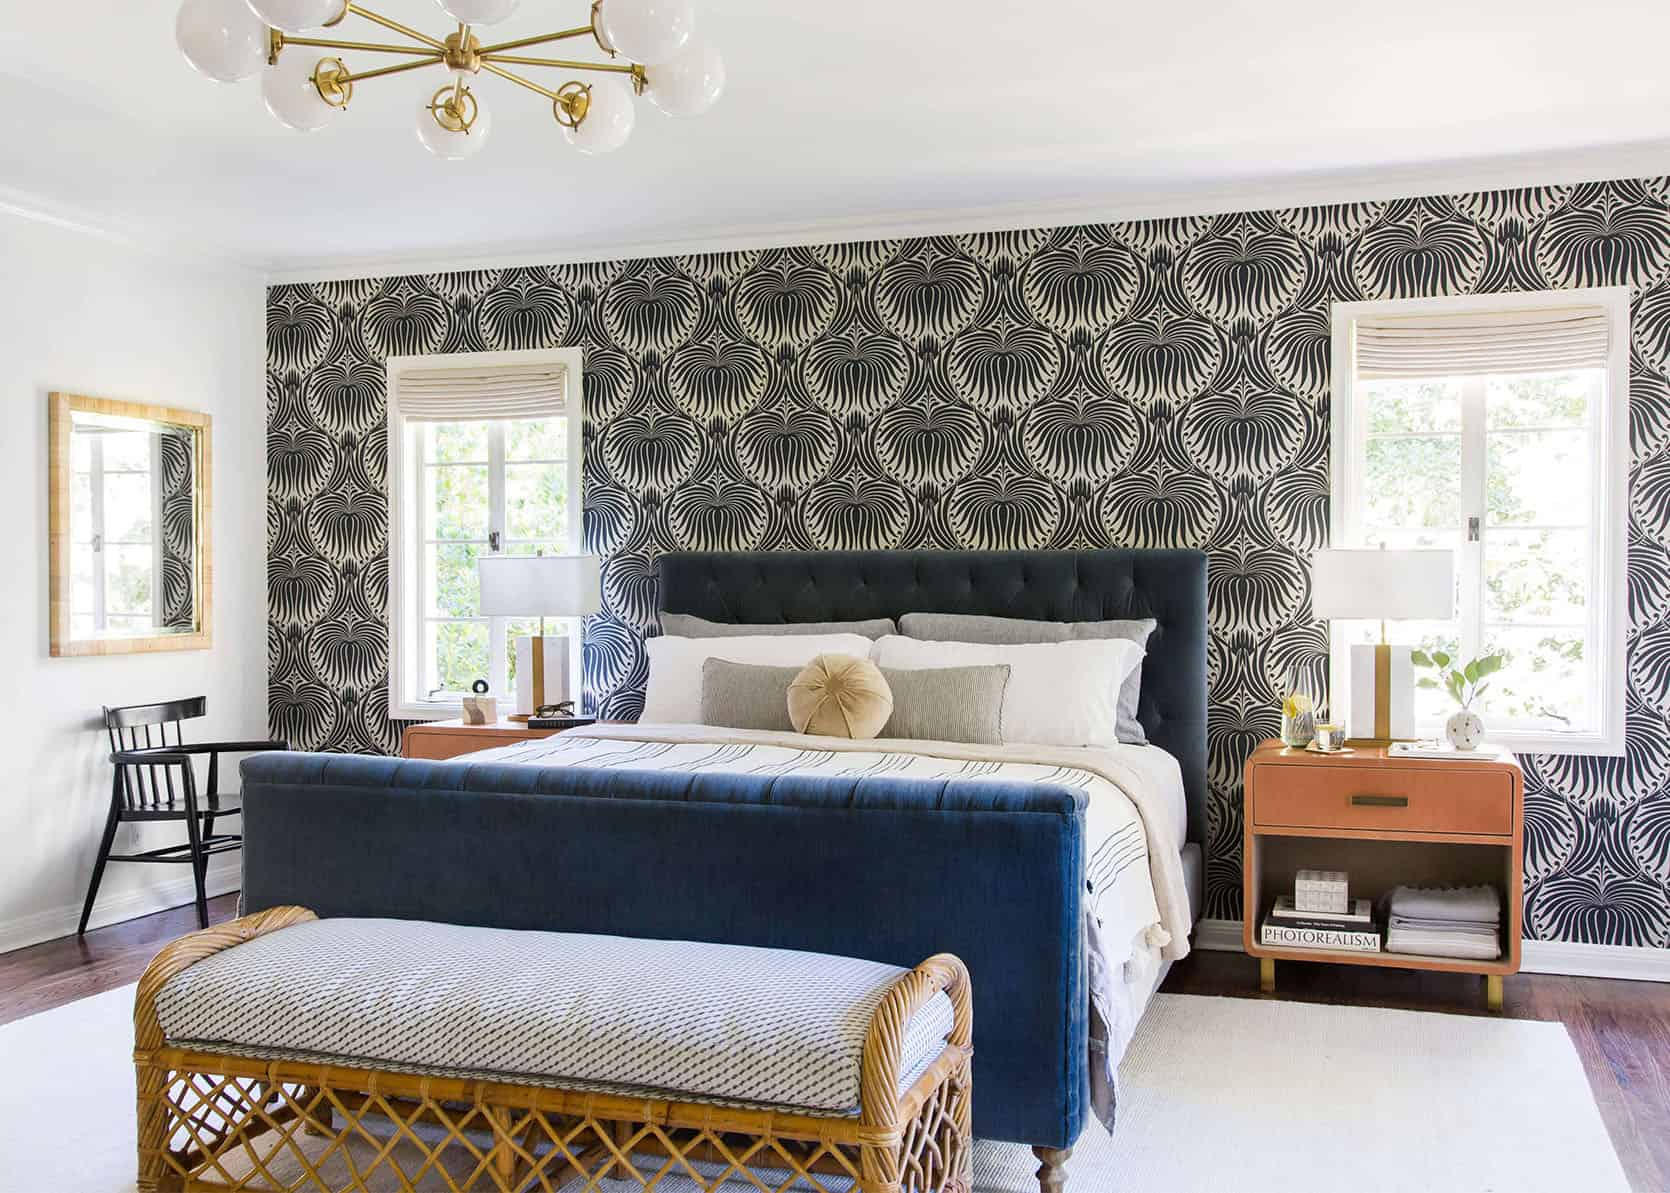 Here's How Much Caitlin Spent Installing Permanent Wallpaper In Her Rental (With All Your FAQs Answered From Prep To Finish)